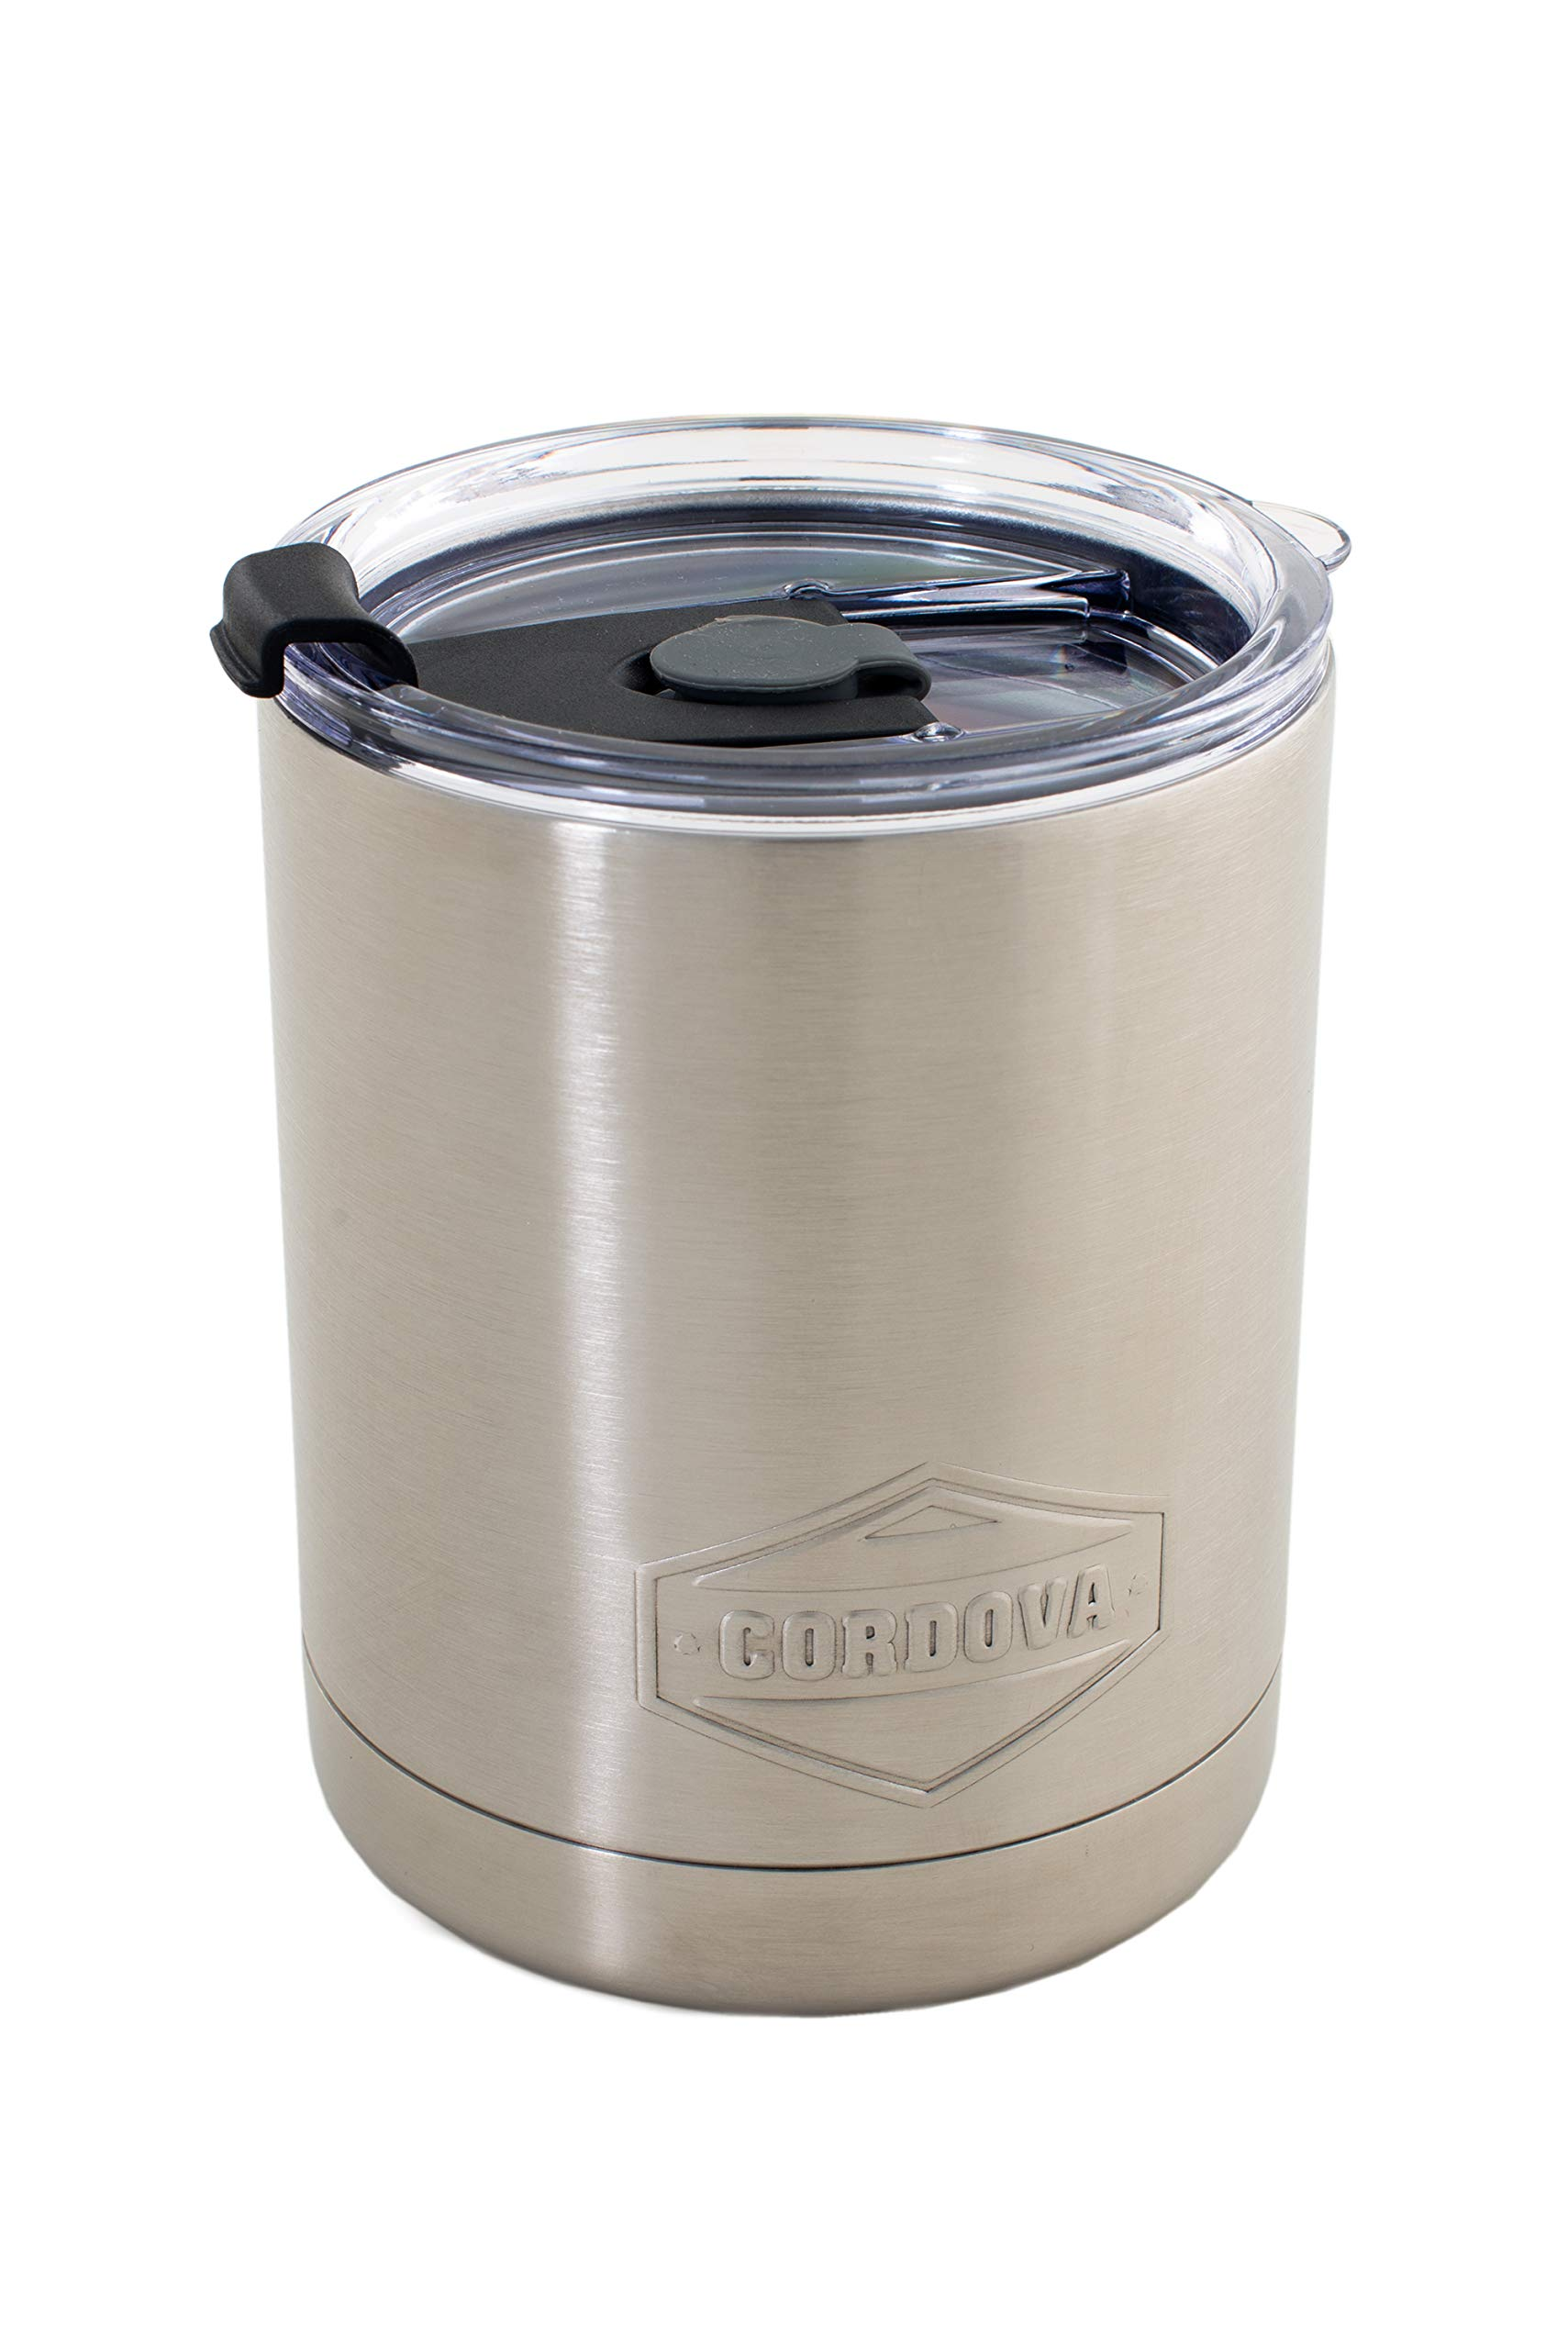 Cordova Coolers Stainless Steel Tumbler, 10 oz by Cordova Coolers (Image #1)